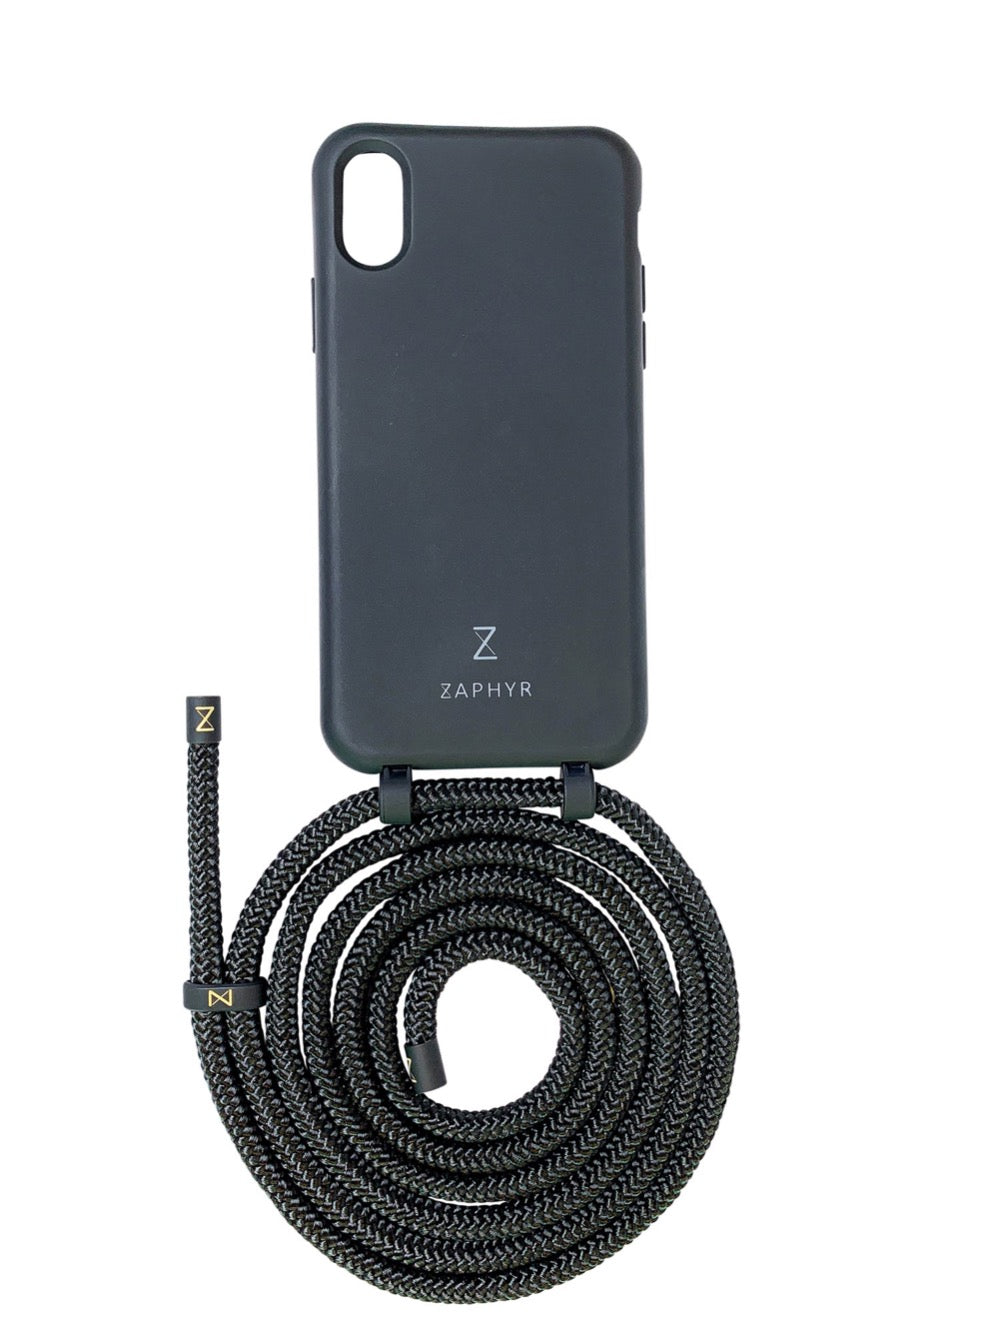 Zaphyr phone chain in black